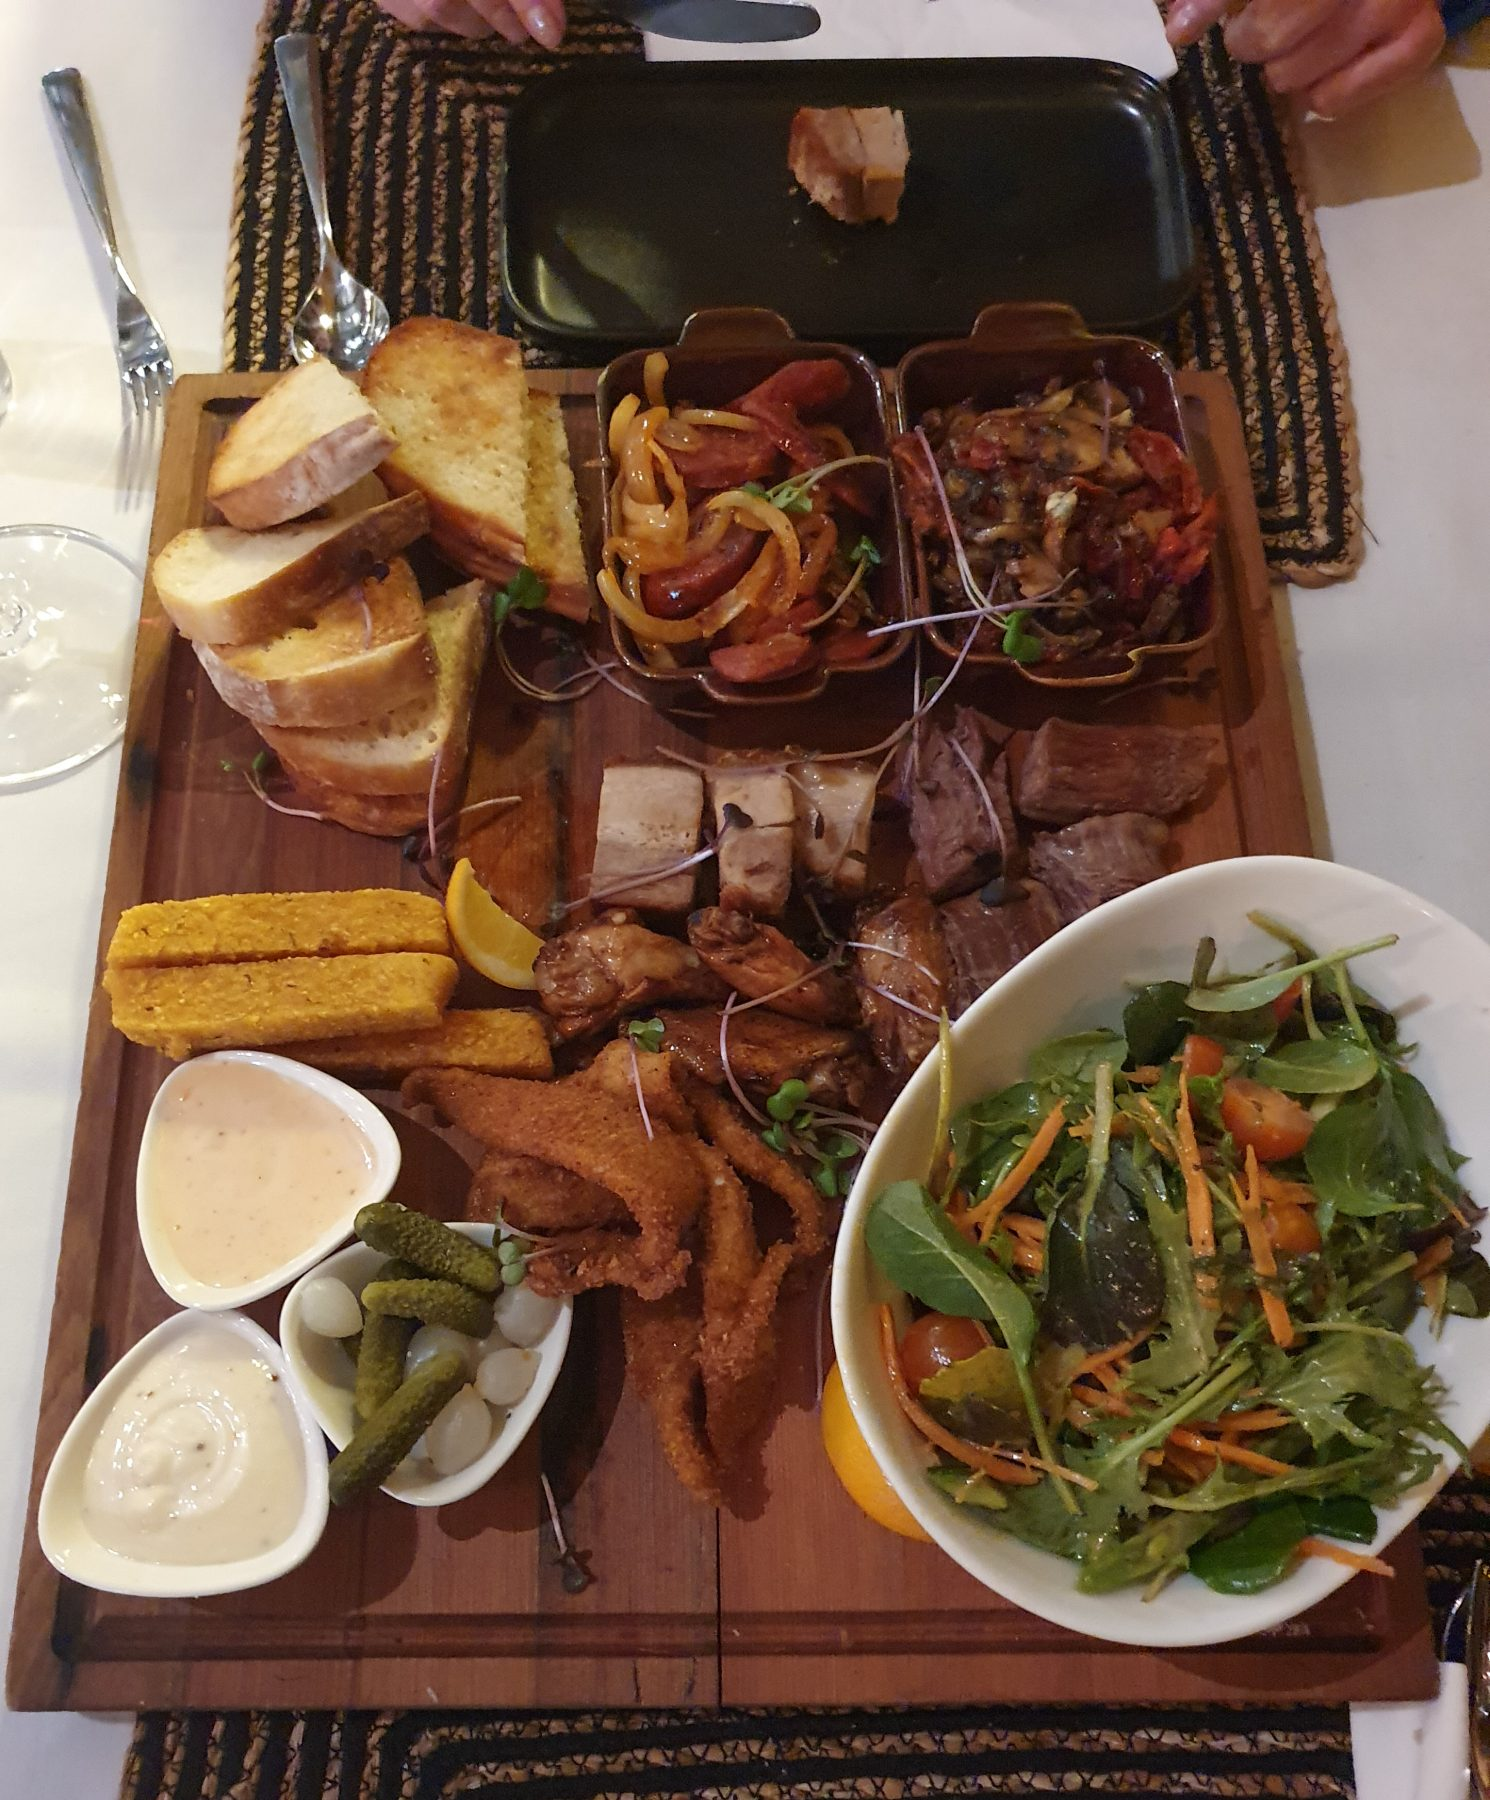 The Vine eatery and bar Taupo Sharing Platter